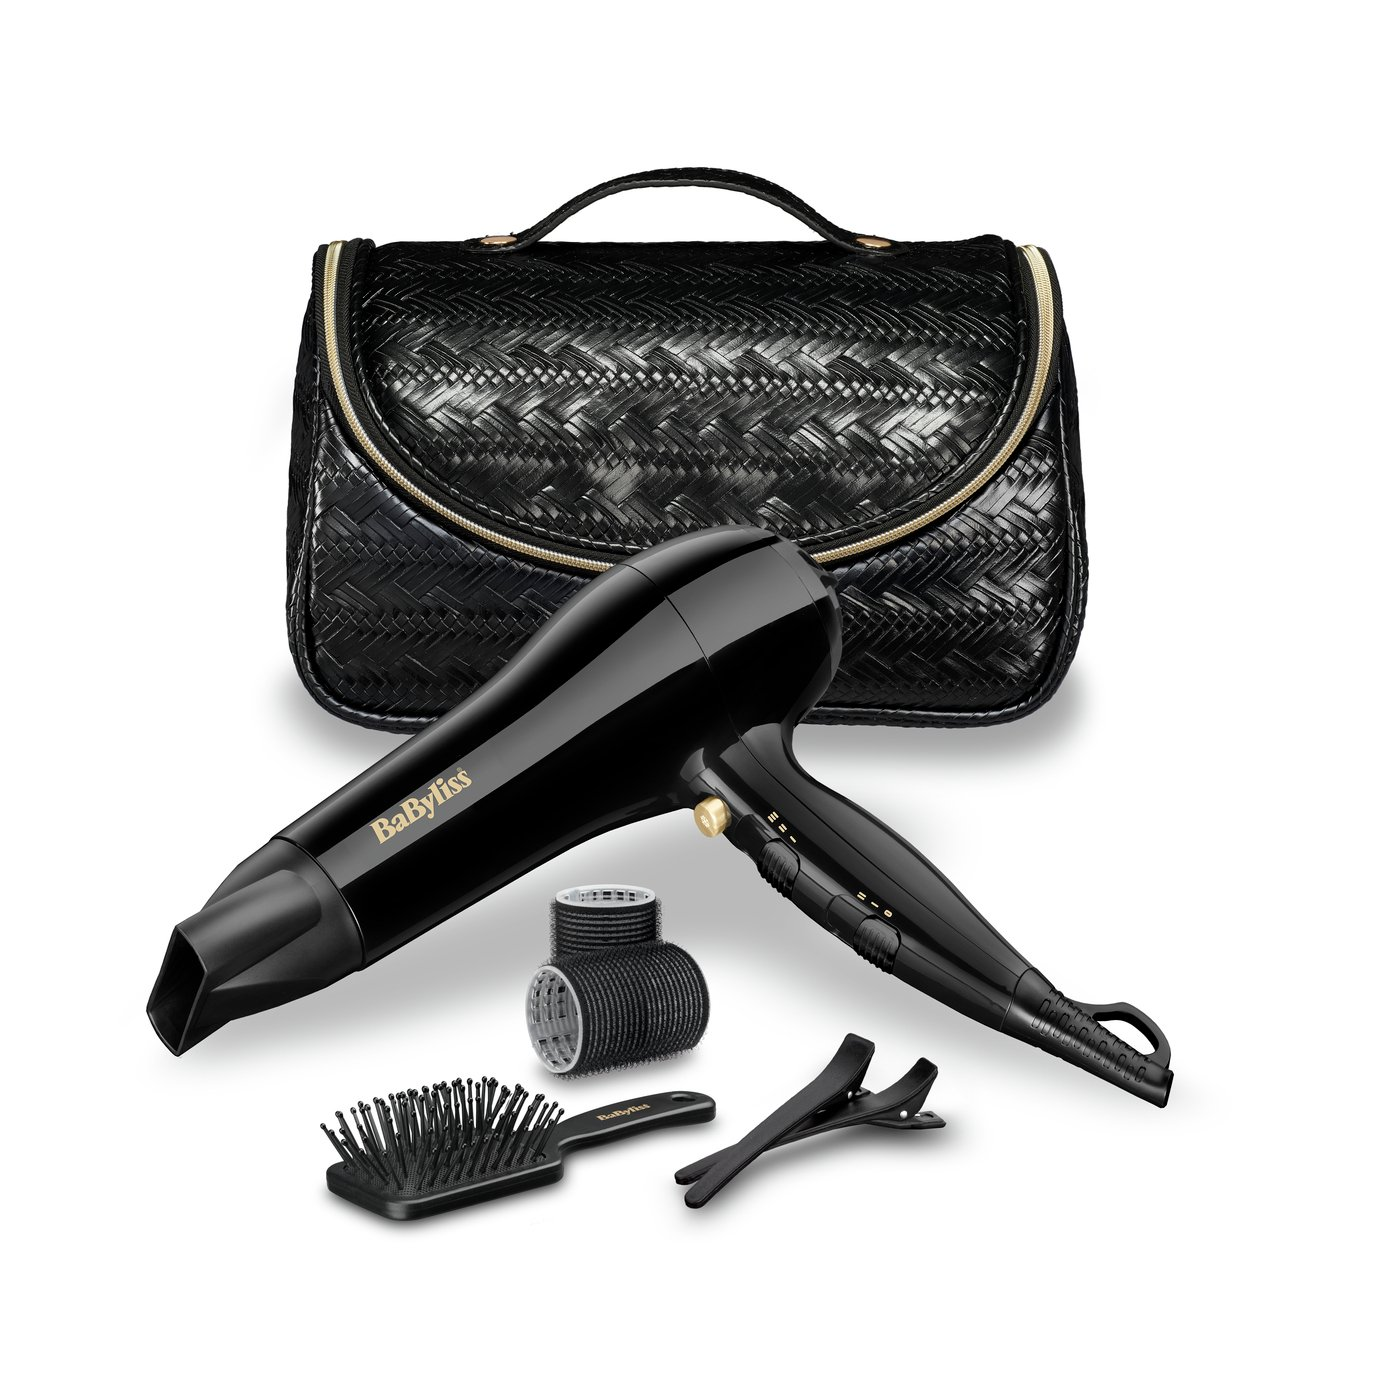 BaByliss Hair Dryer Gift Set